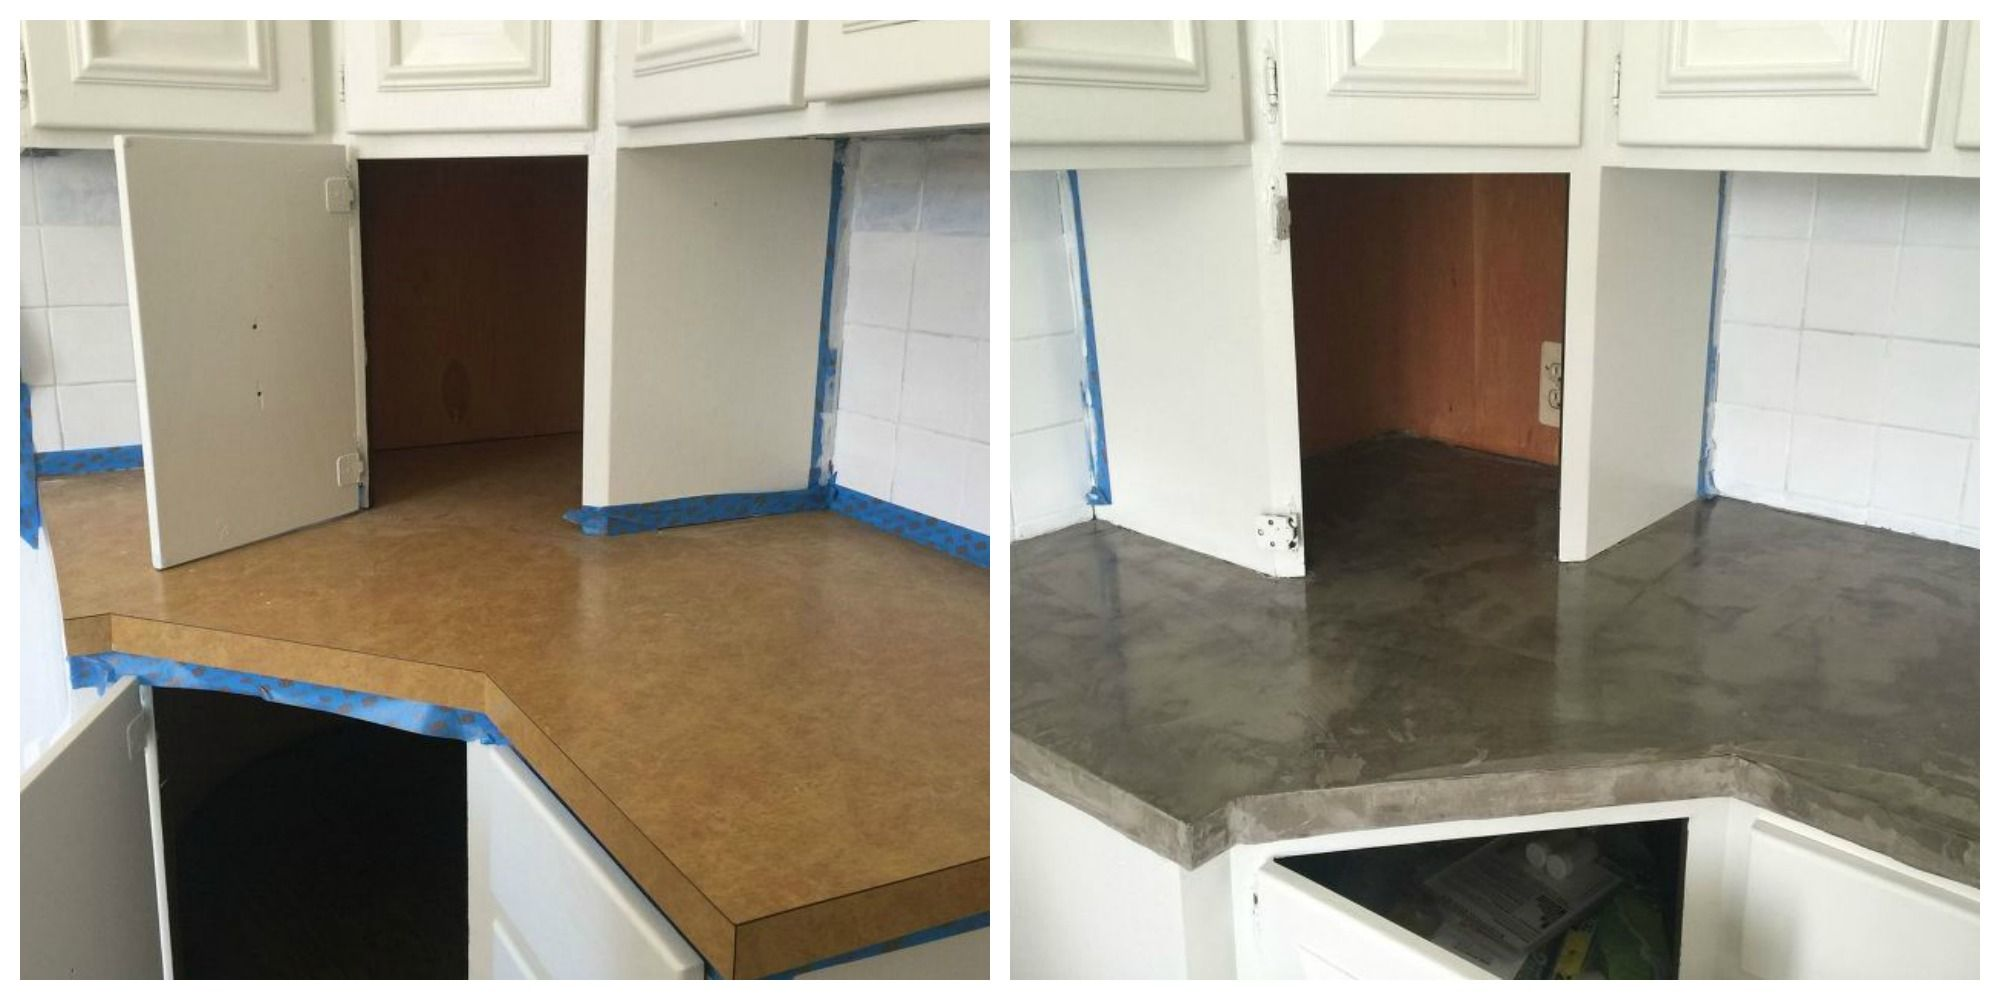 This Brilliant Diy Is The Easiest Way To Fake Concrete Countertops How Make Look With Cement